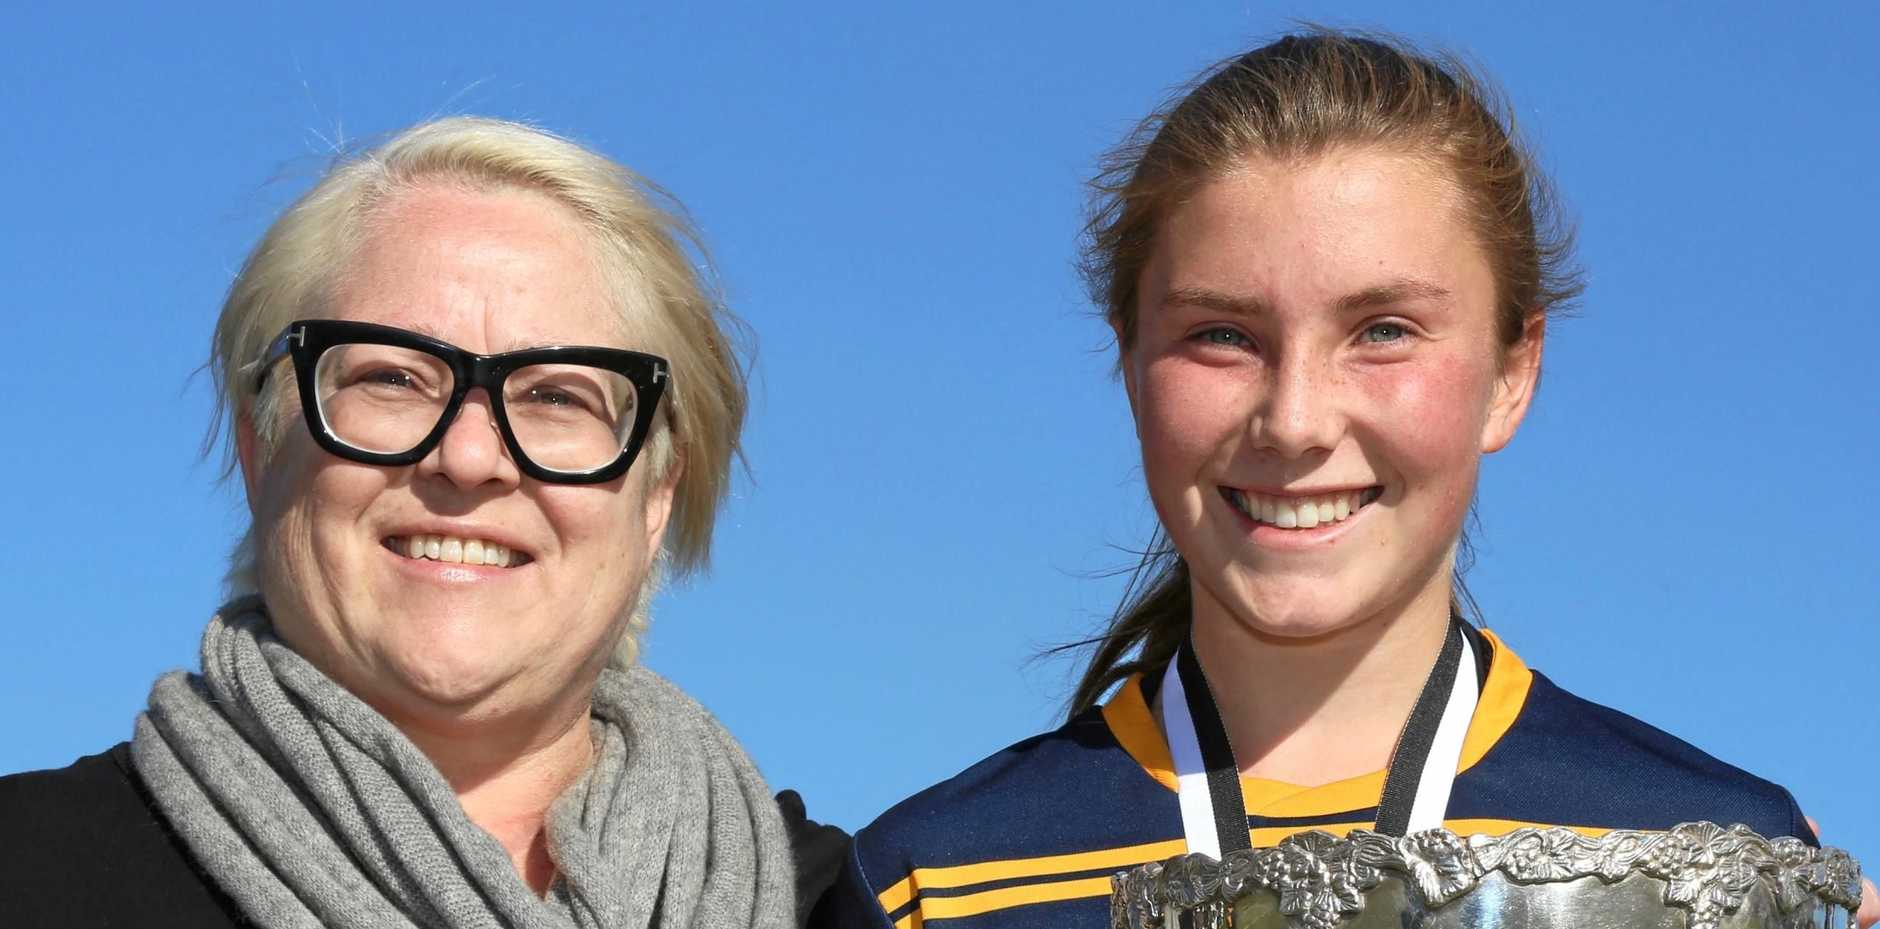 Westfields Sports High of Western Sydney won the Bill Turner Trophy last year, but Wollumbin High School has set its sights on claiming the cup this year.